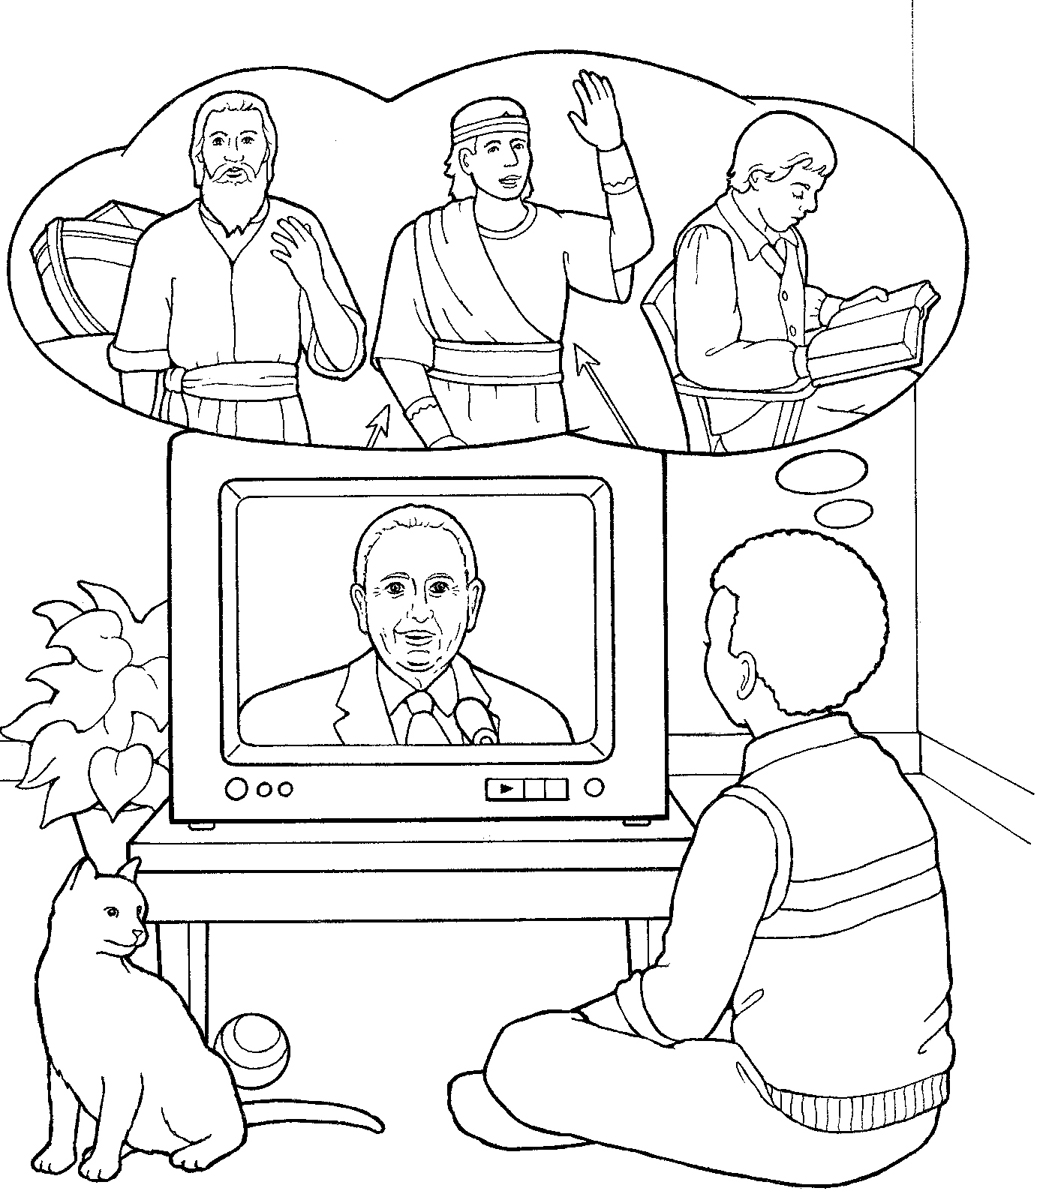 Bouy quotes president monson quotesgram for President monson coloring page